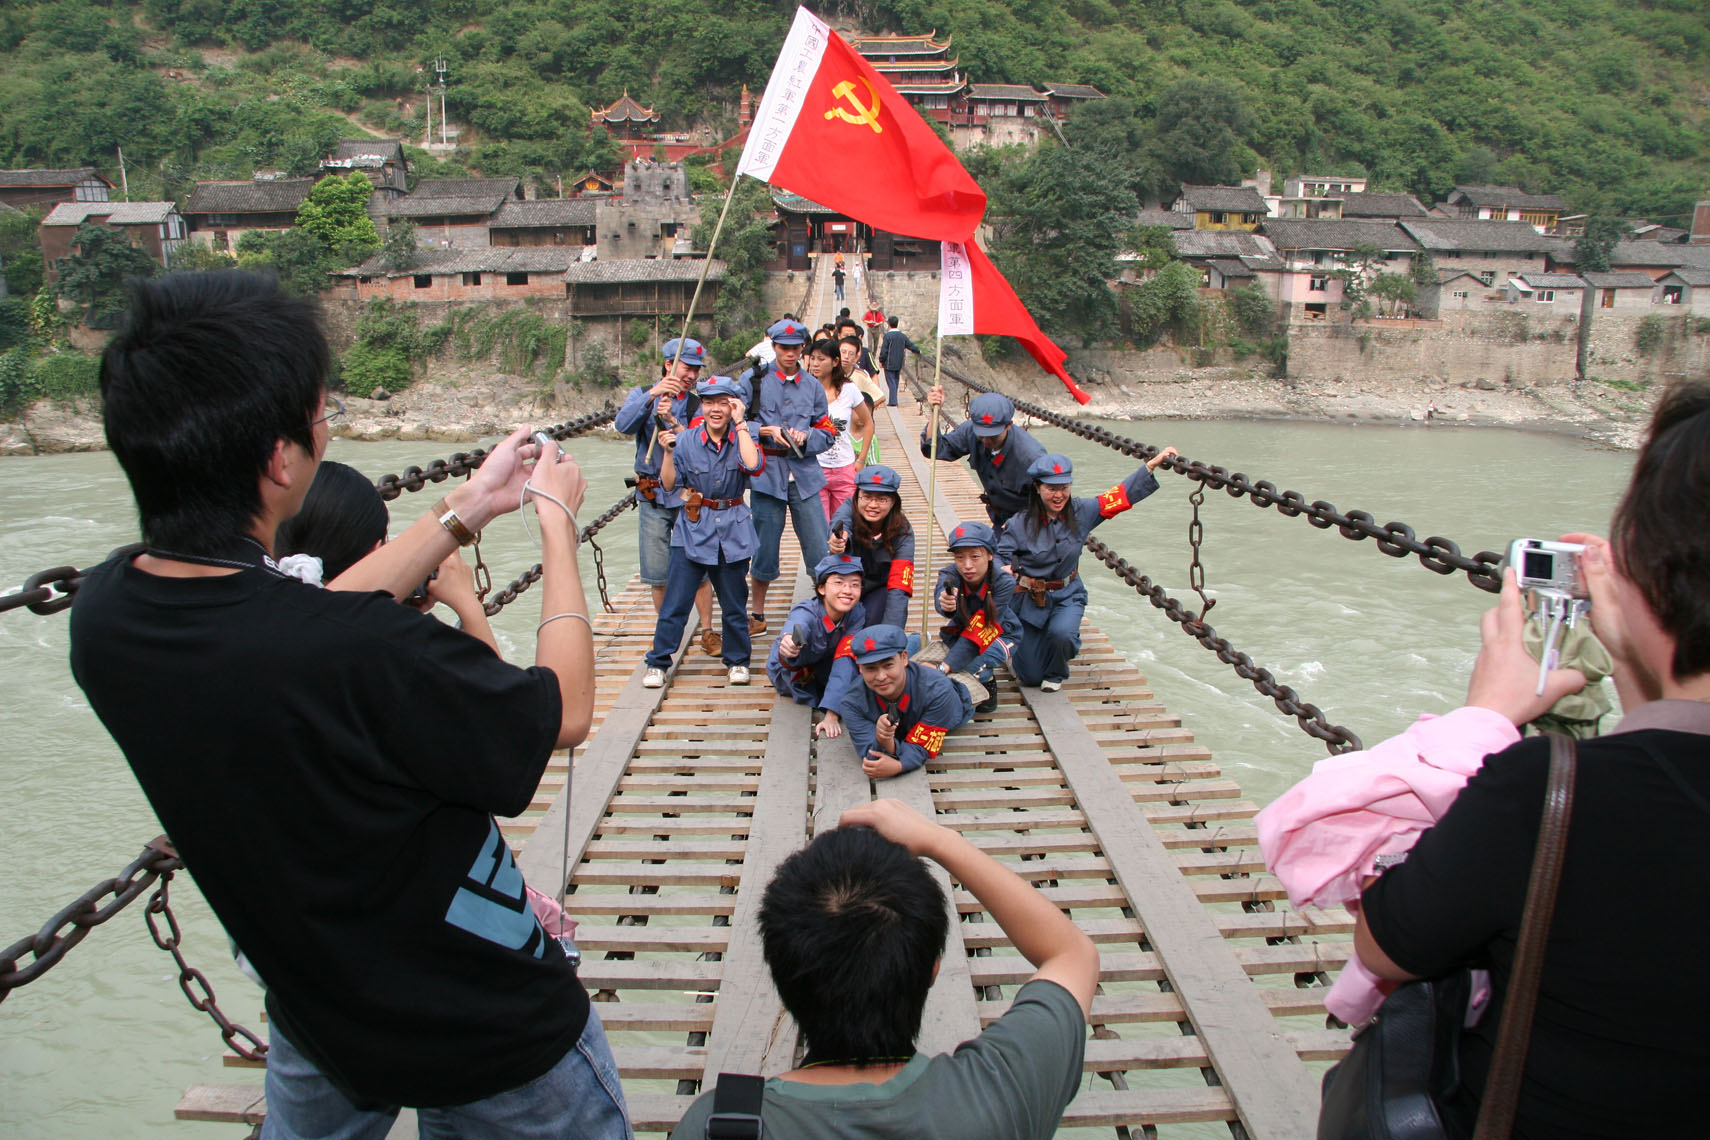 China tourism communism